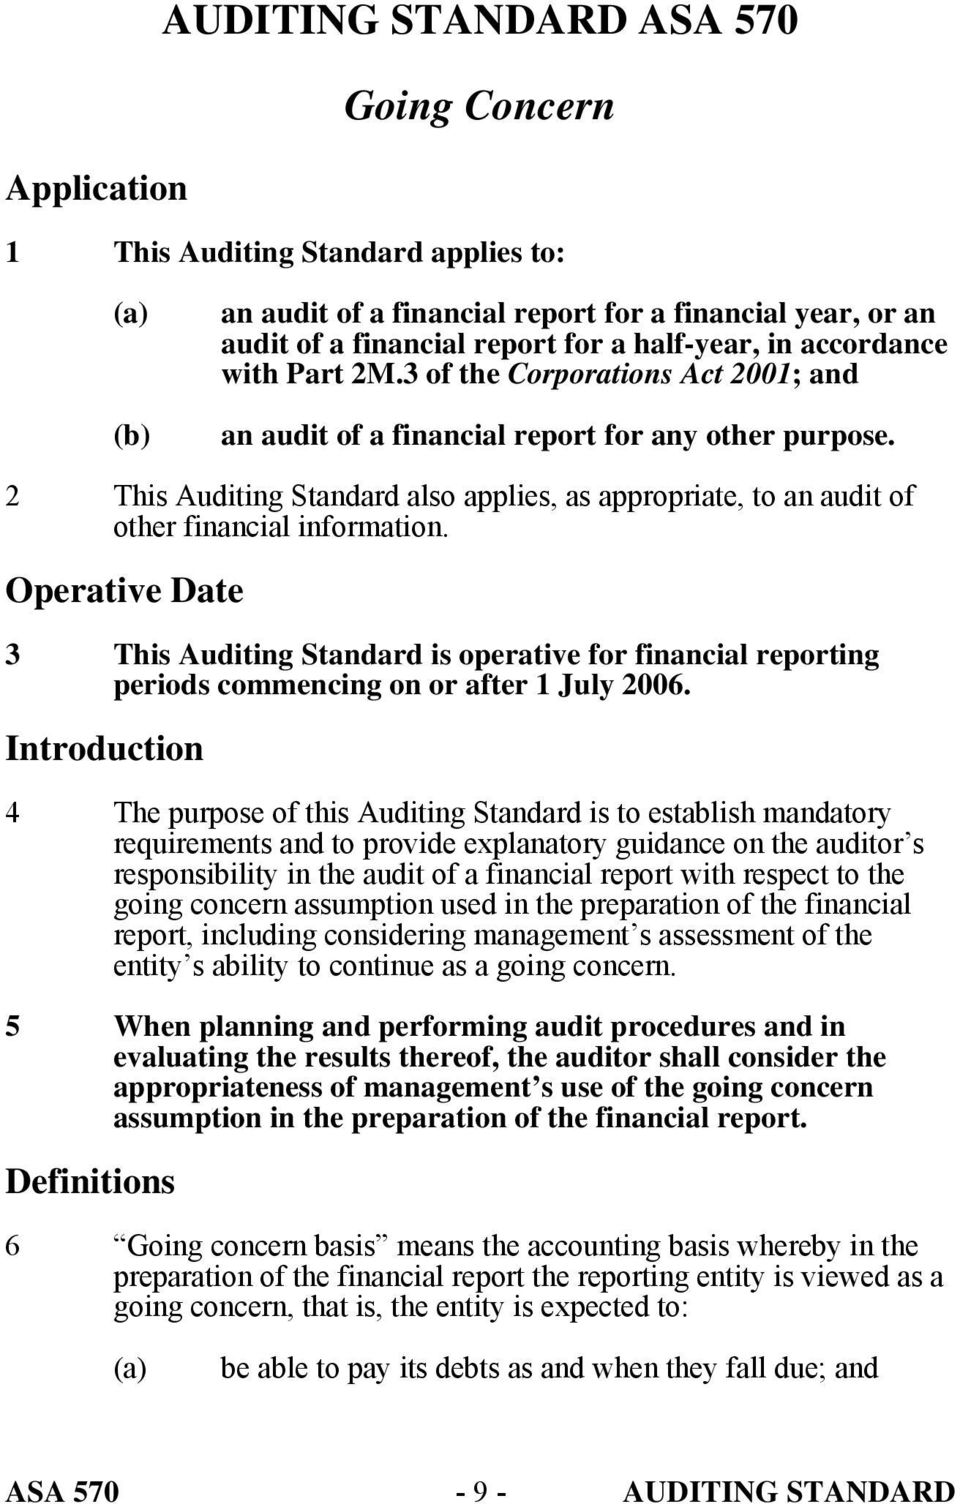 2 This Auditing Standard also applies, as appropriate, to an audit of other financial information.